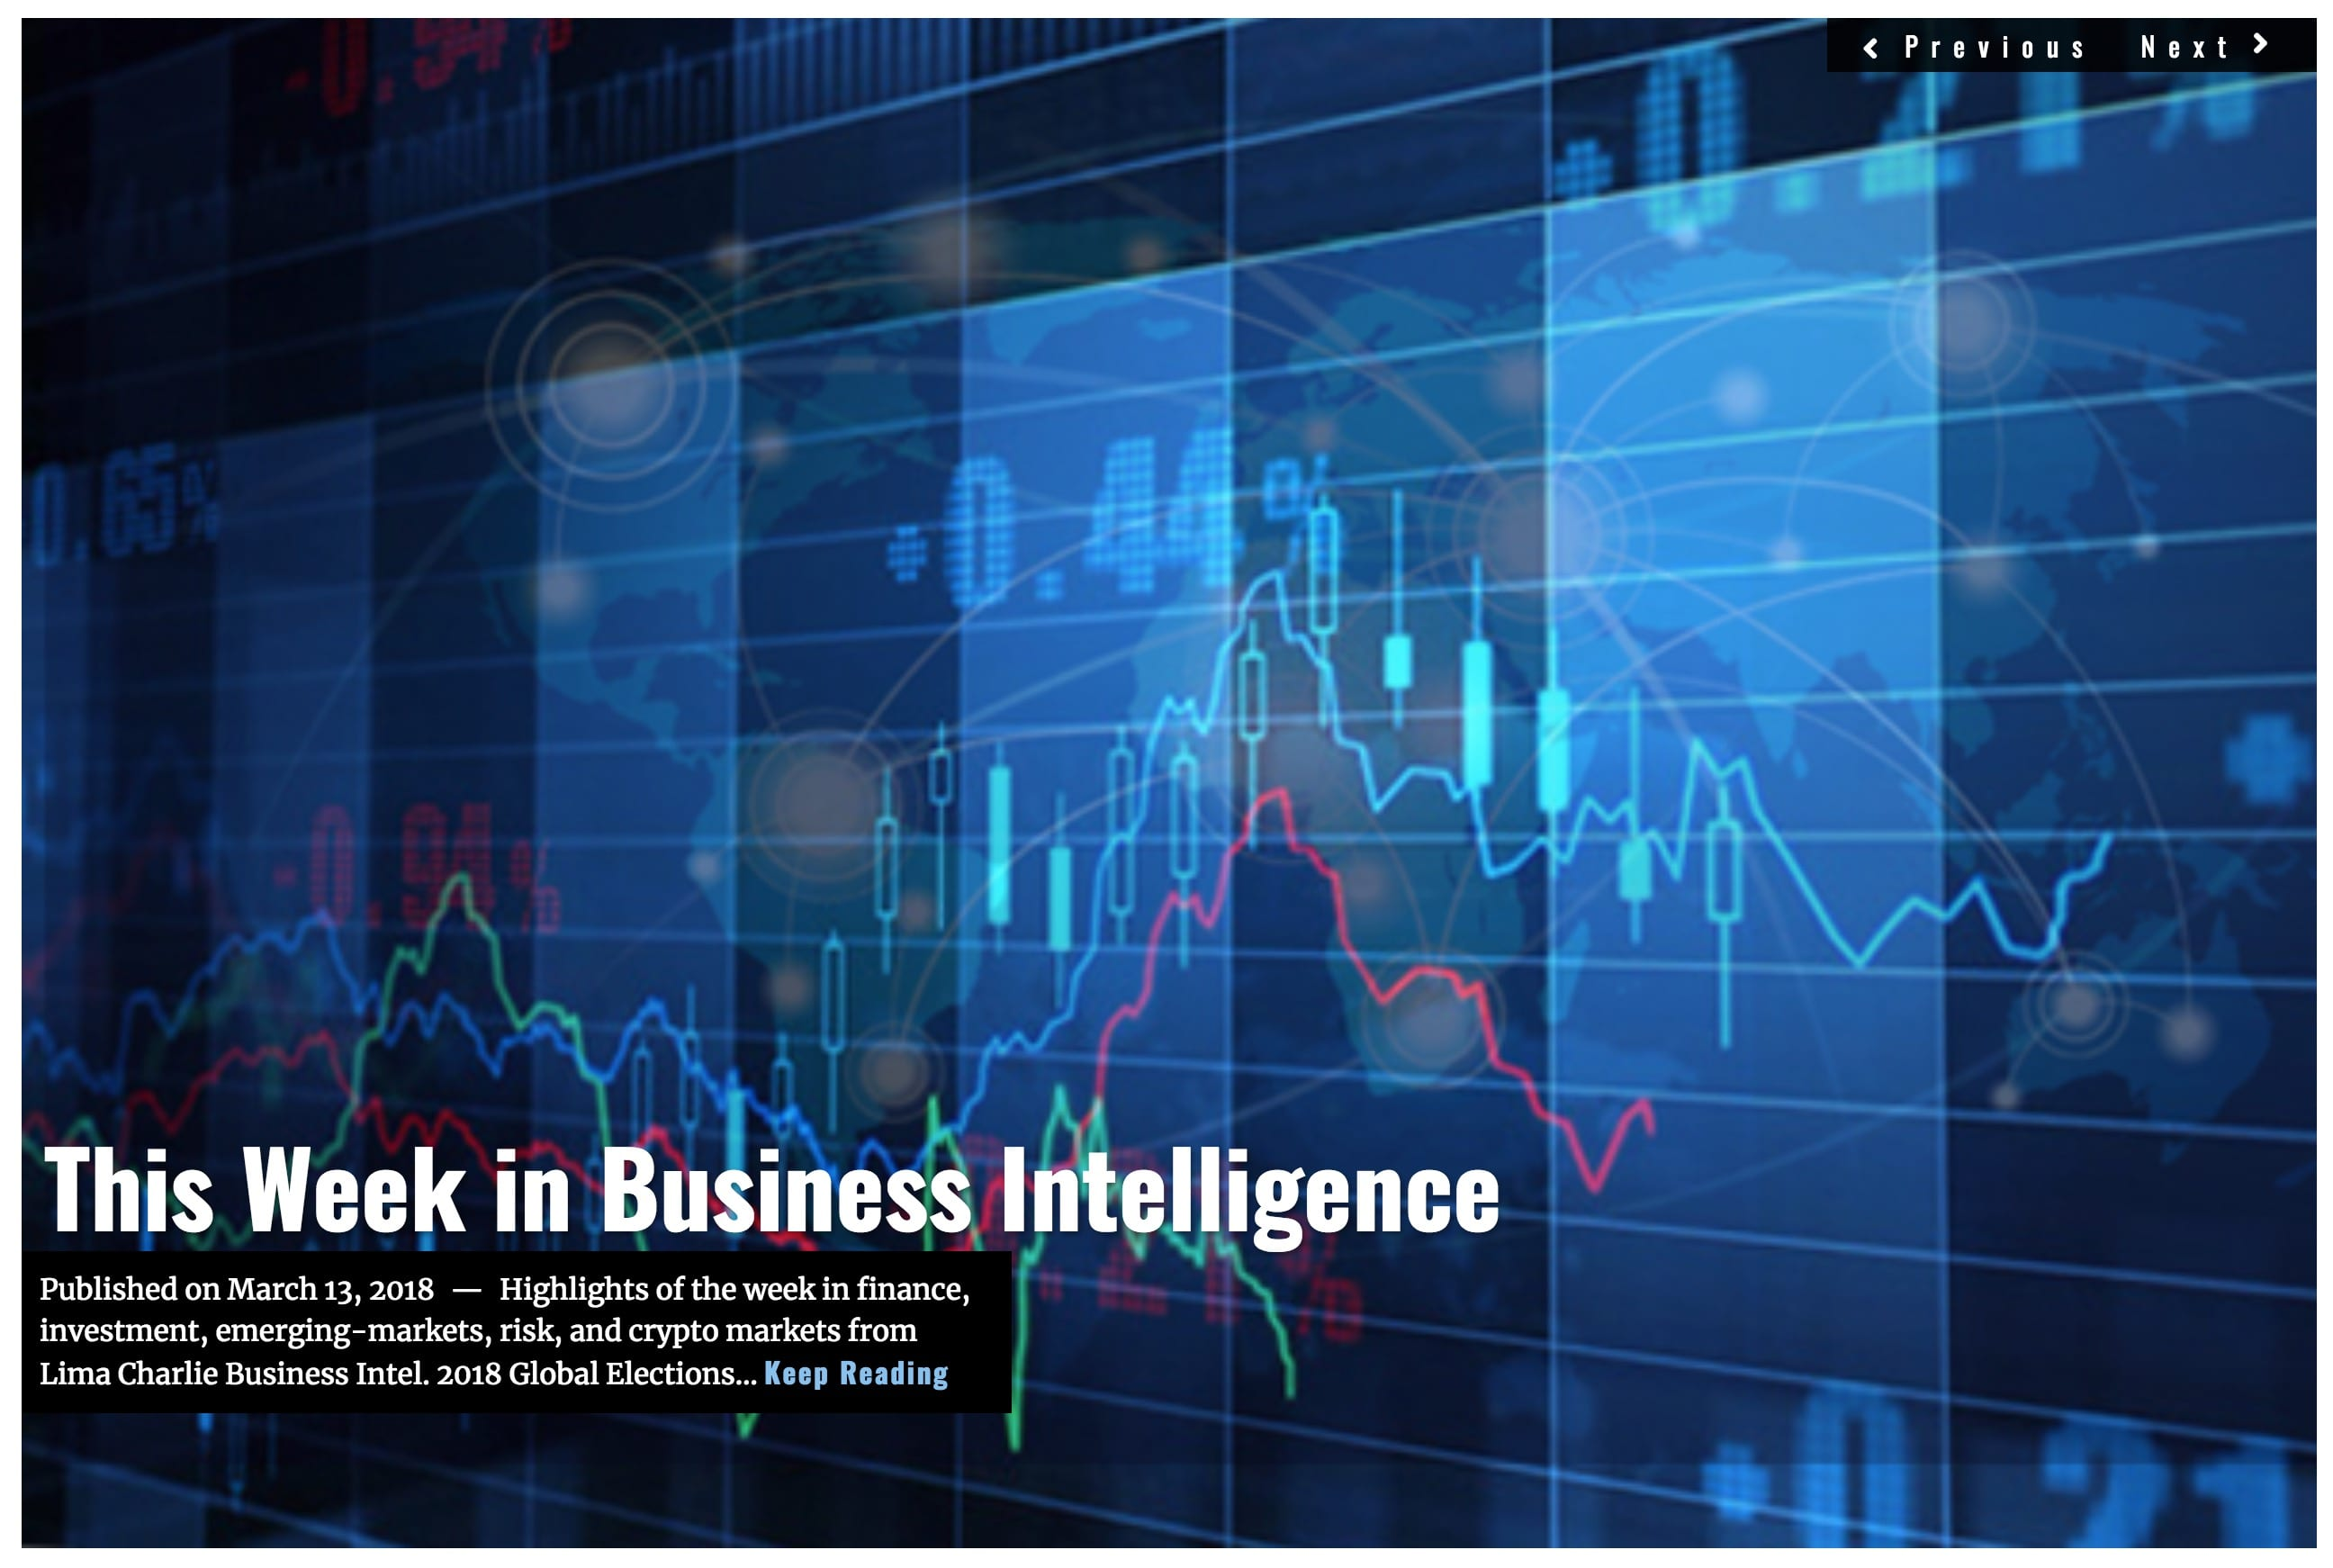 Image Lima Charlie News Headline Week in Business Intelligence MAR 13 2018